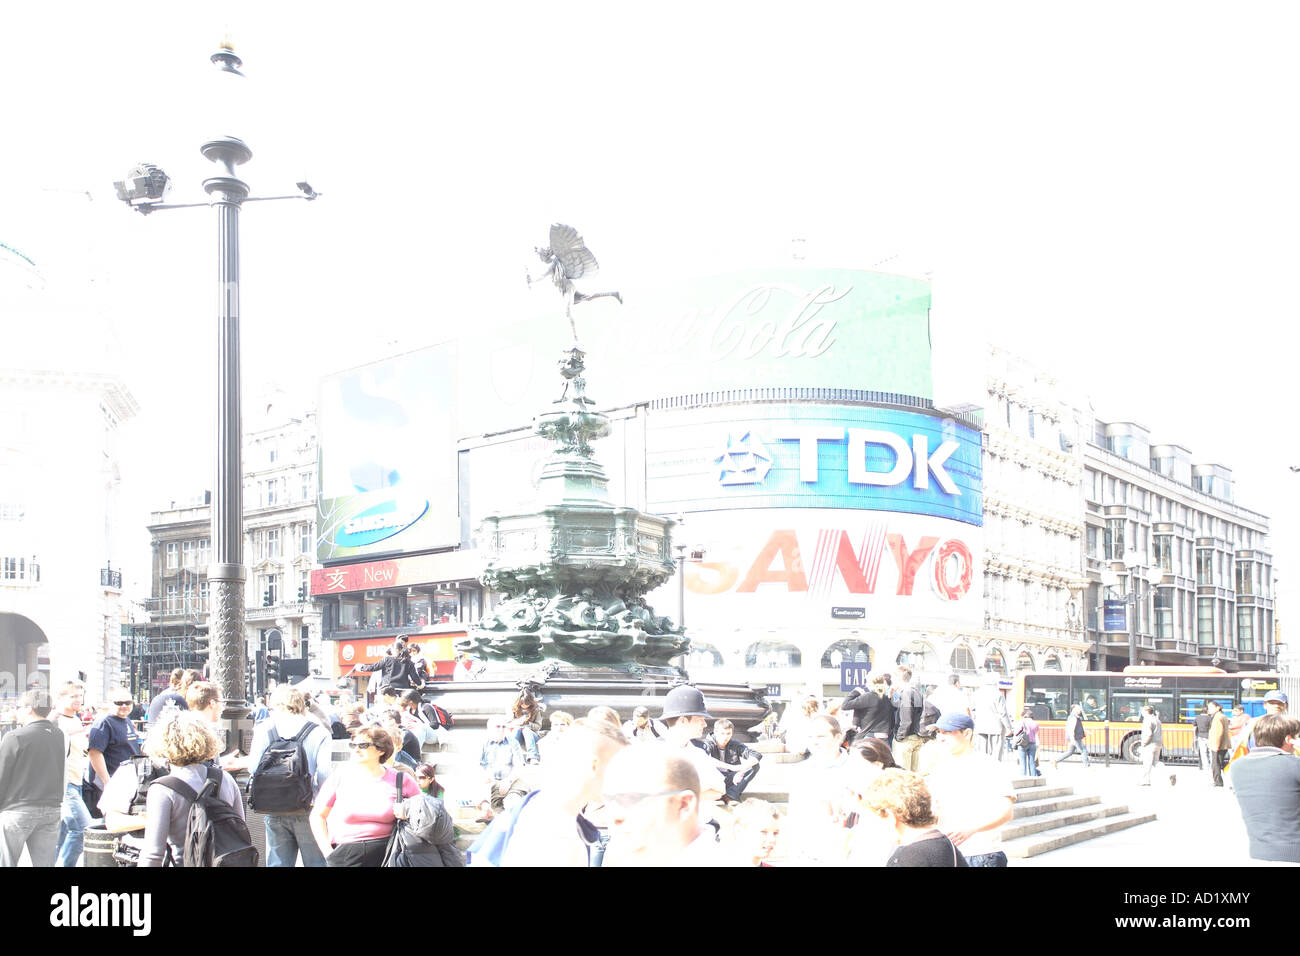 Piccadilly Circus in stylised overexposure. London, England, UK - Stock Image